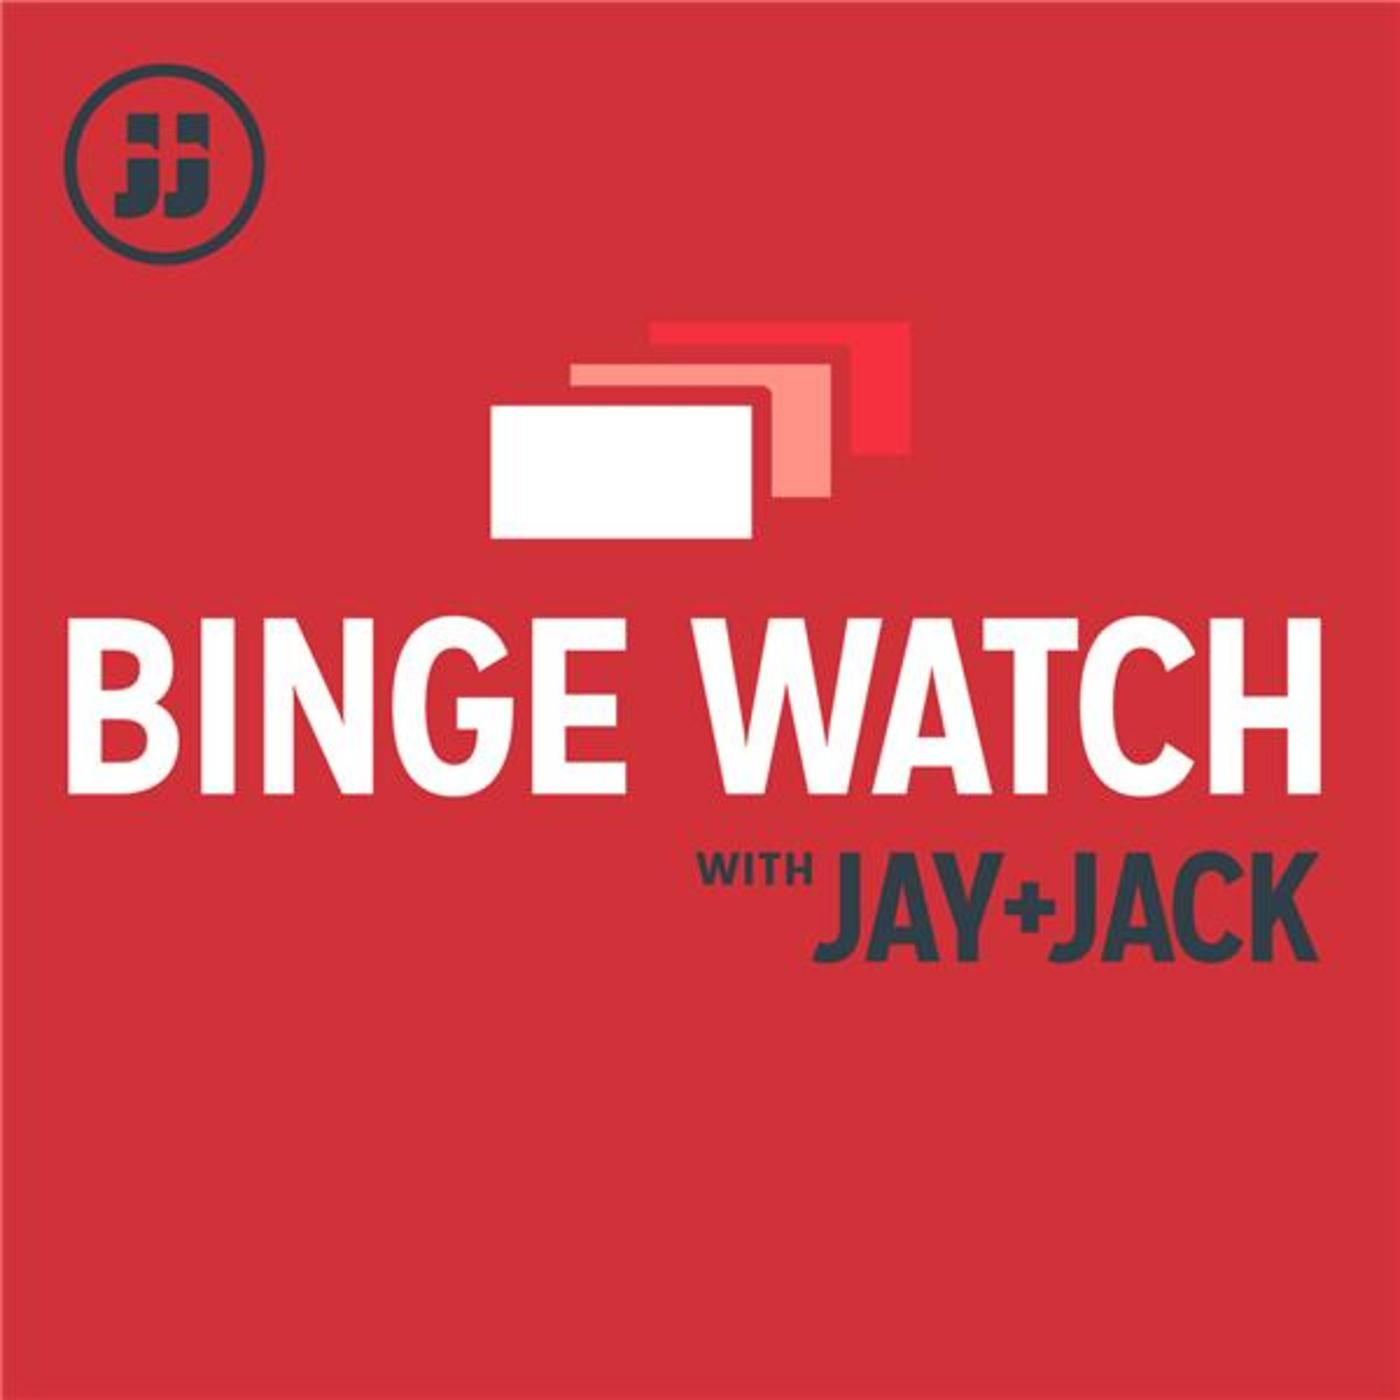 Binge Watch with Jay and Jack